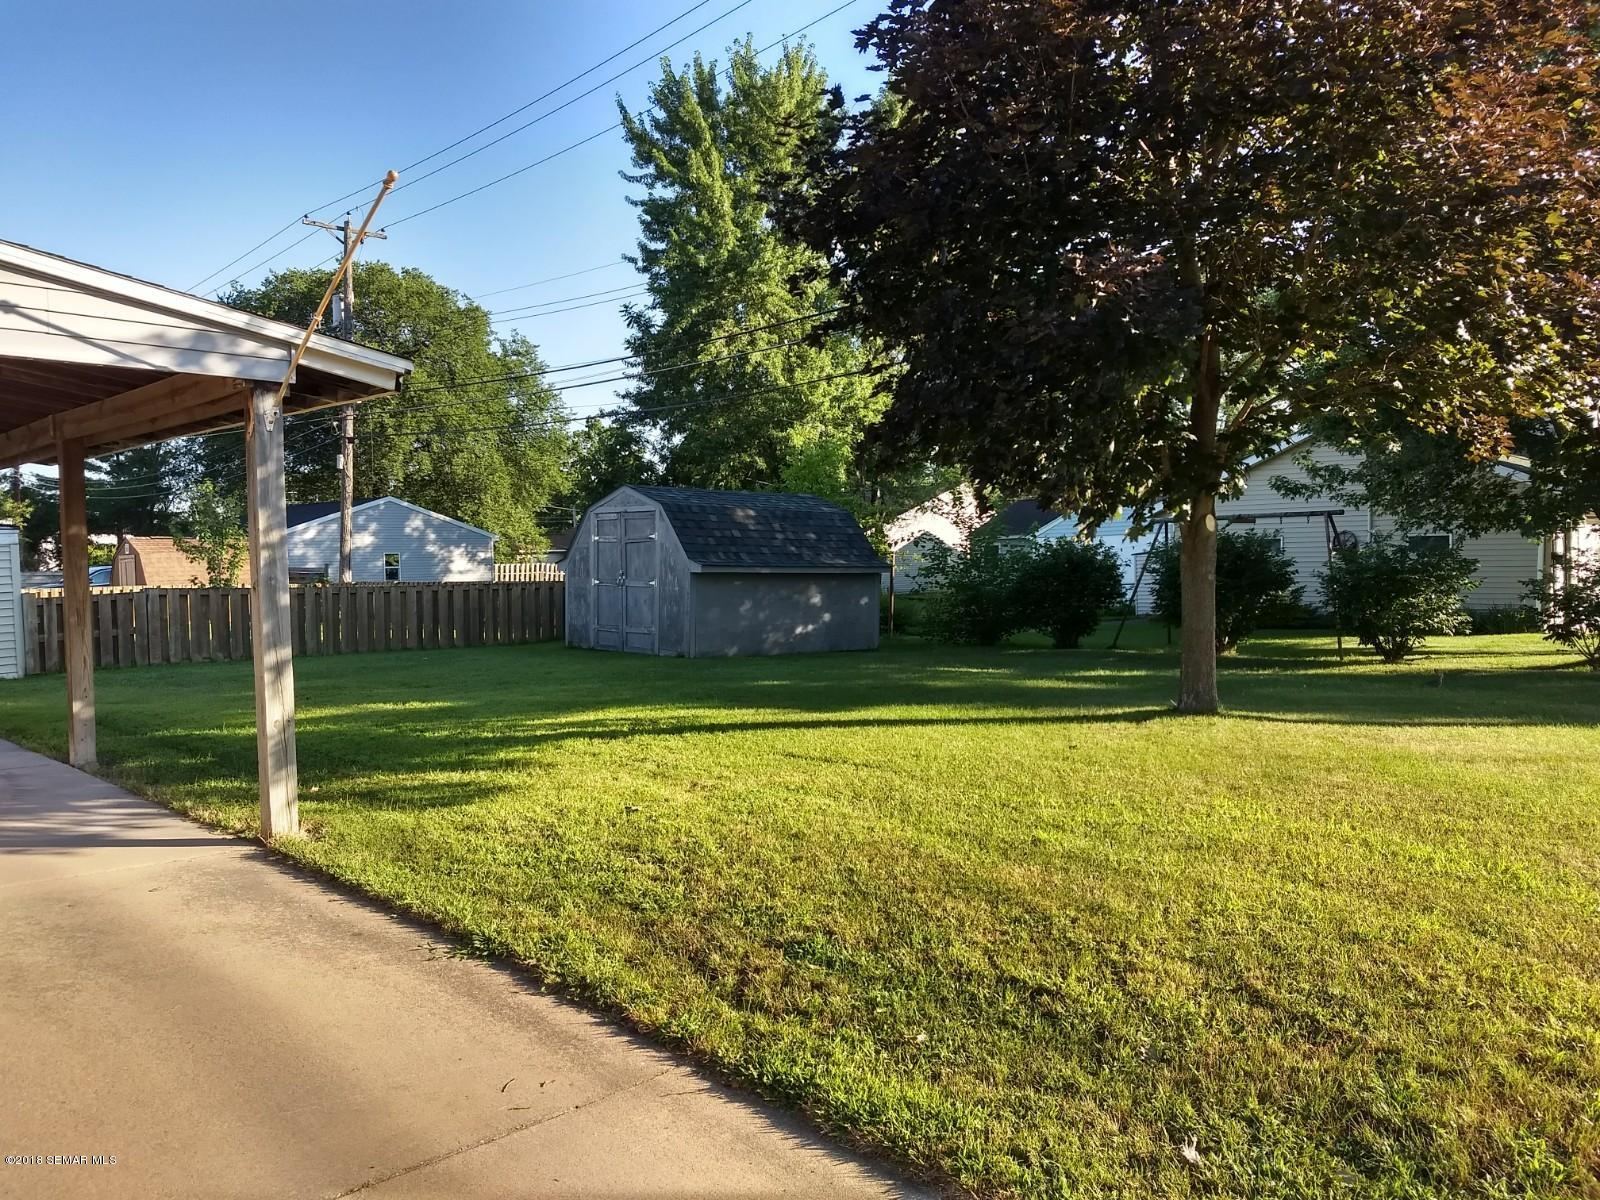 3910 6th,Winona,Minnesota 55987,2 Bedrooms Bedrooms,2 BathroomsBathrooms,Single family residence,6th,4089873